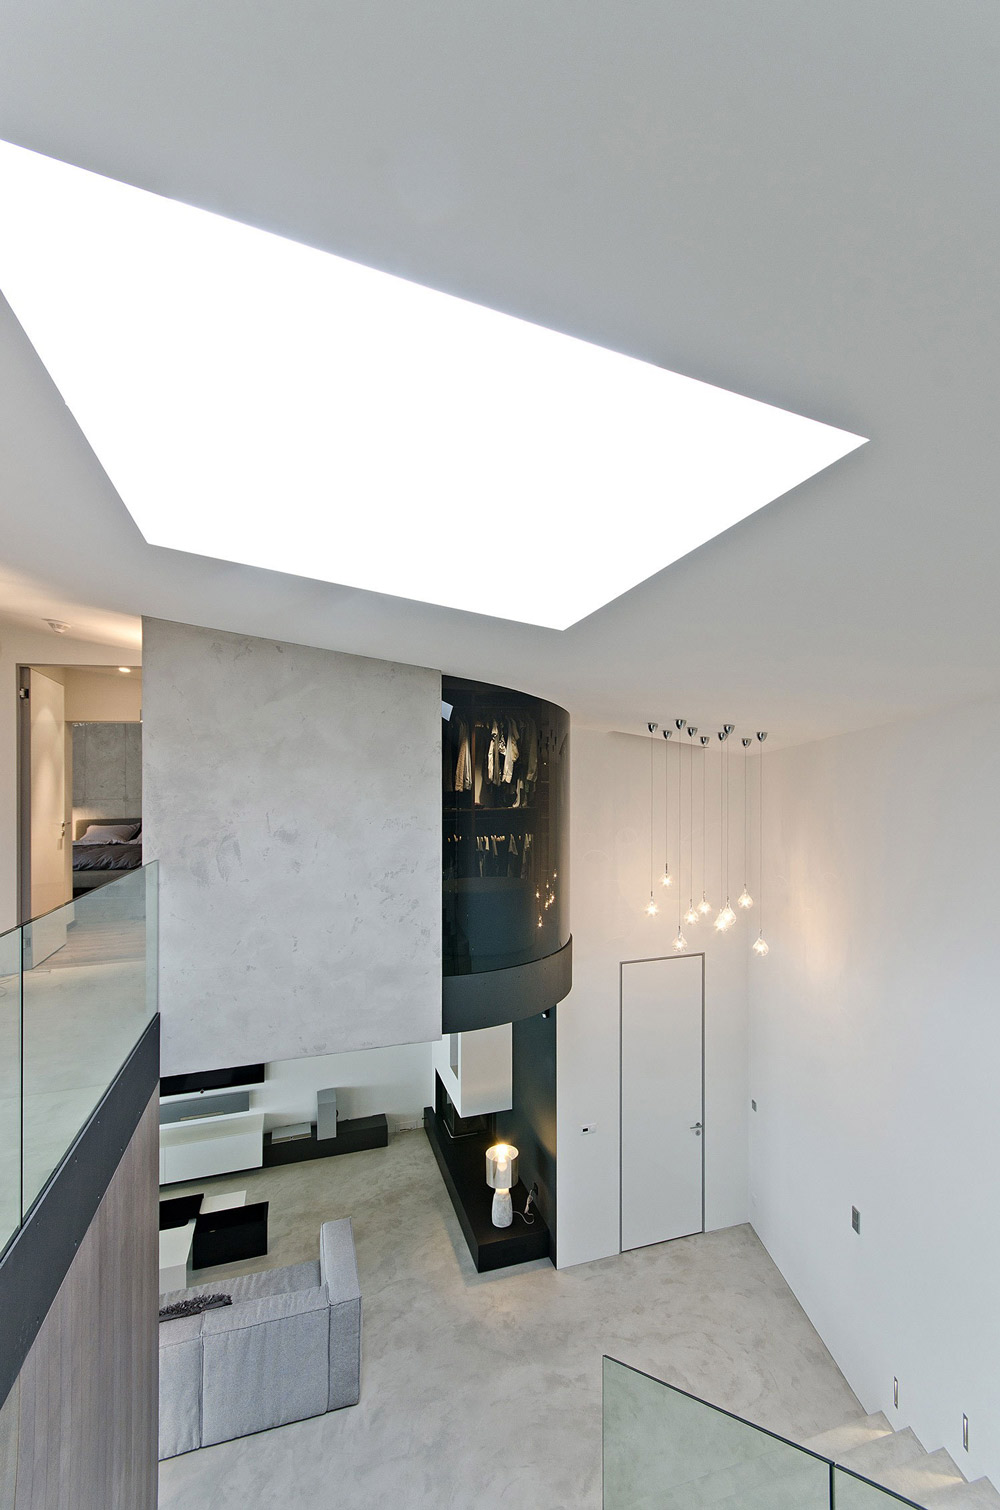 Lighting, Concrete Interior Design in Osice, Czech Republic